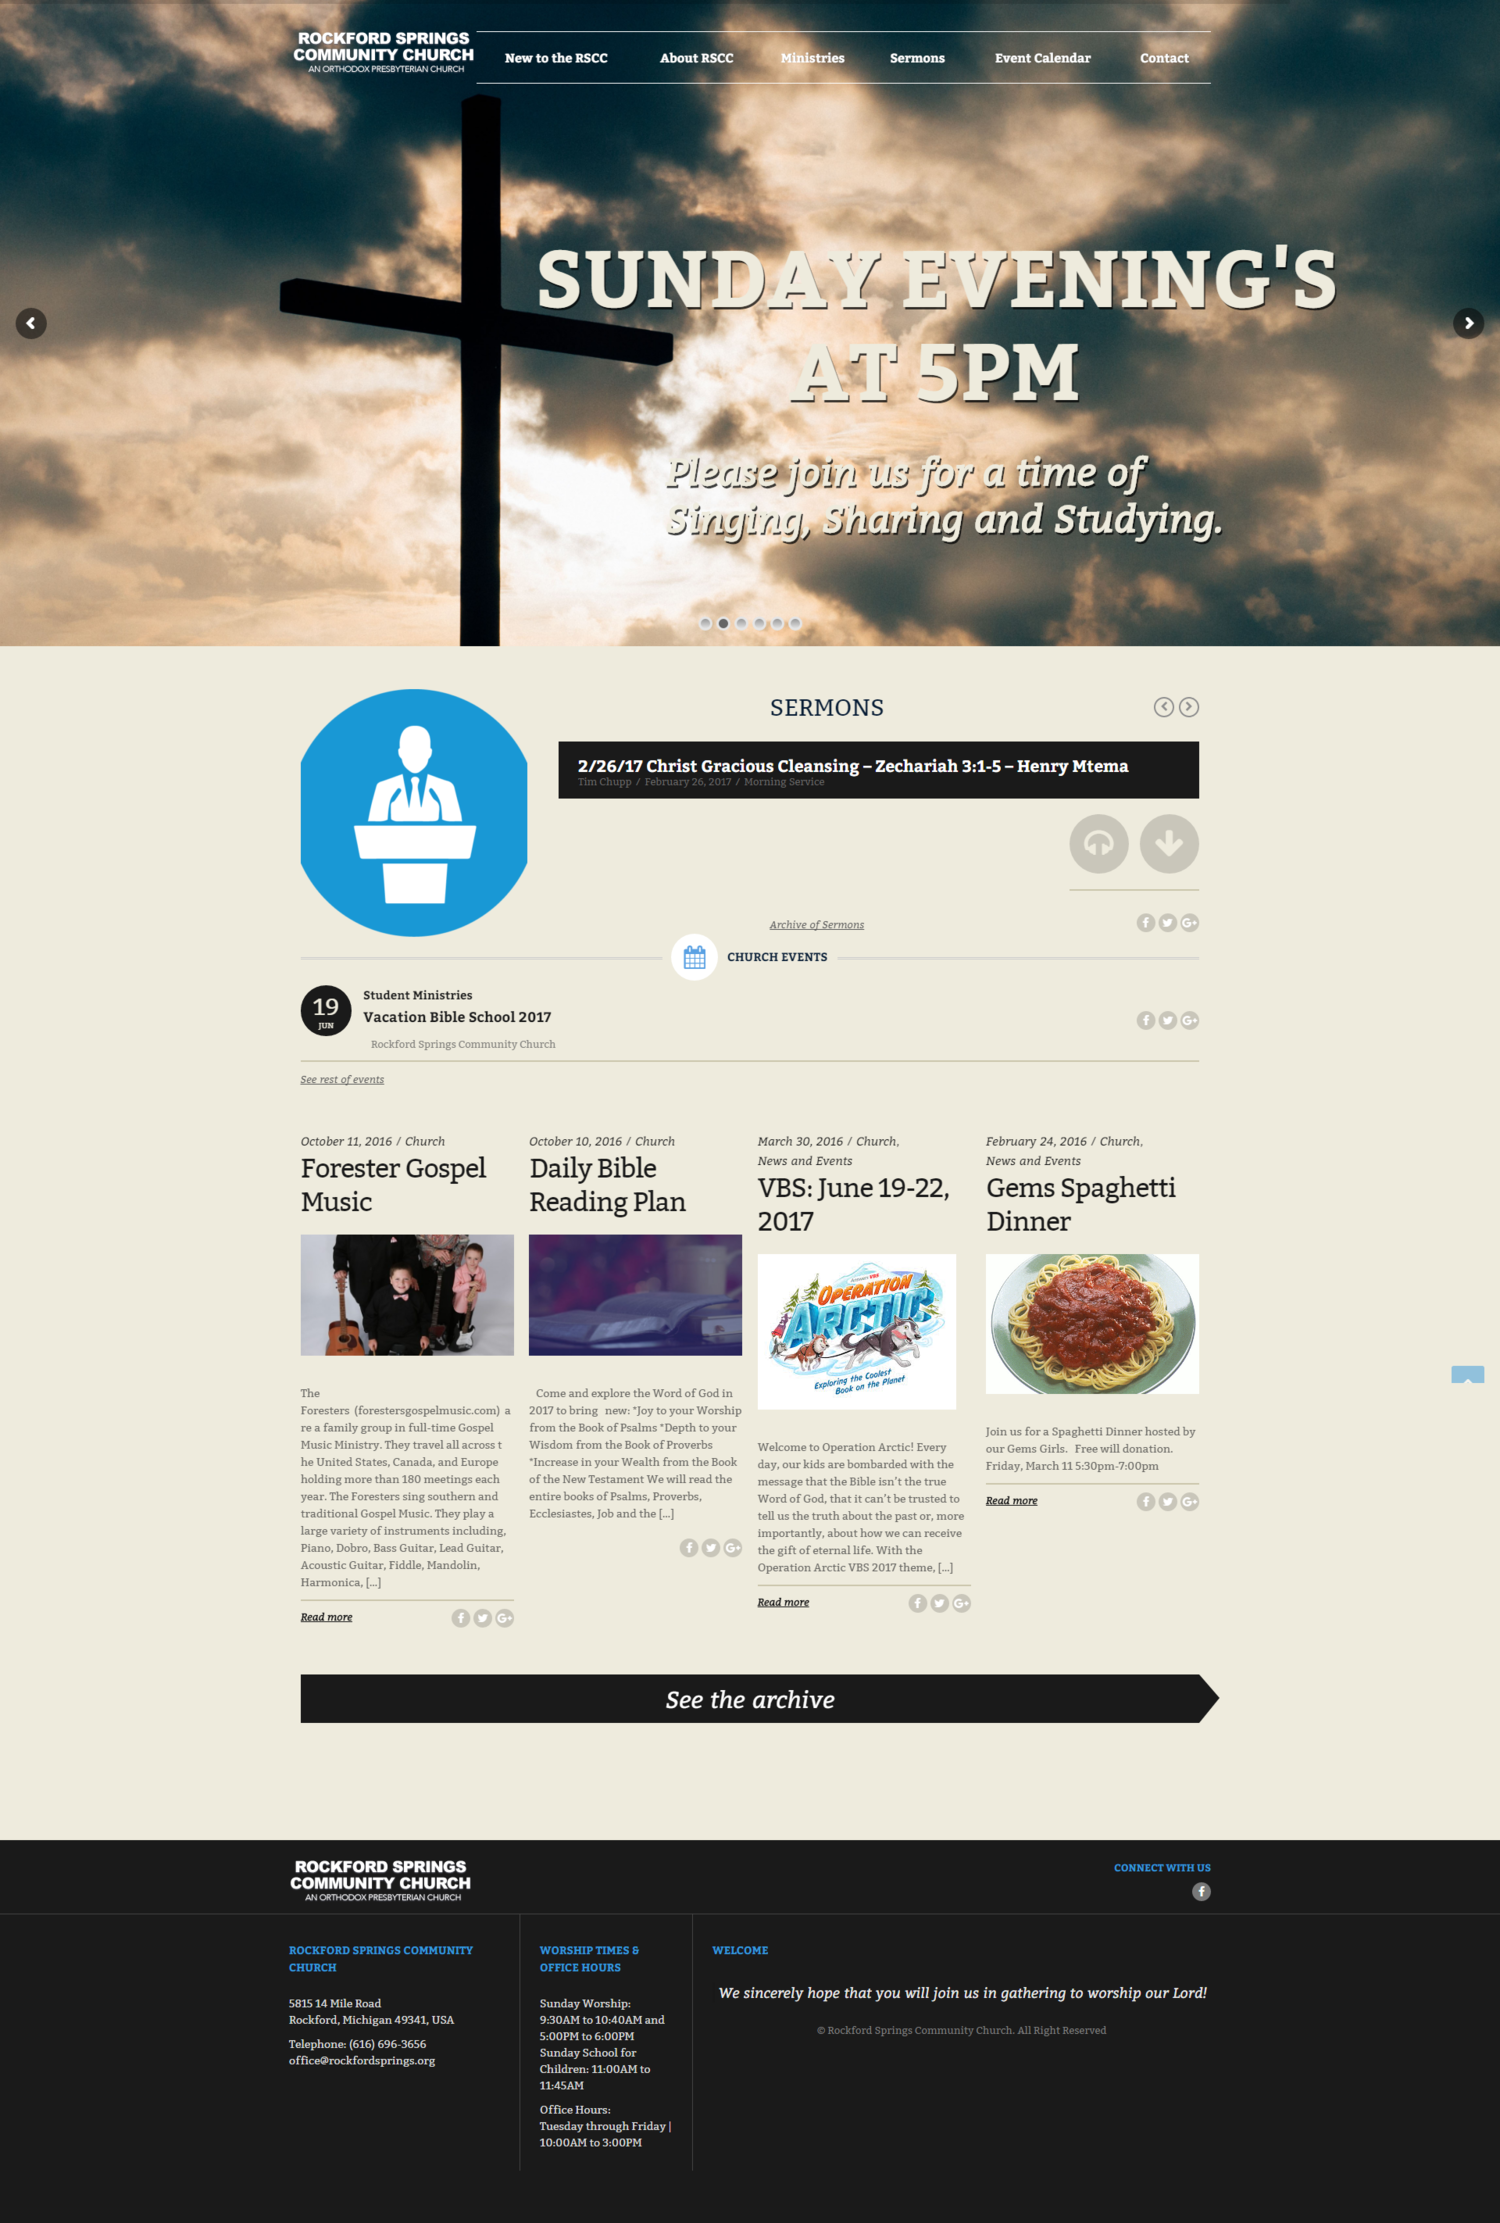 Using responsive design helps bring a church's message to all mobile devices and screens.